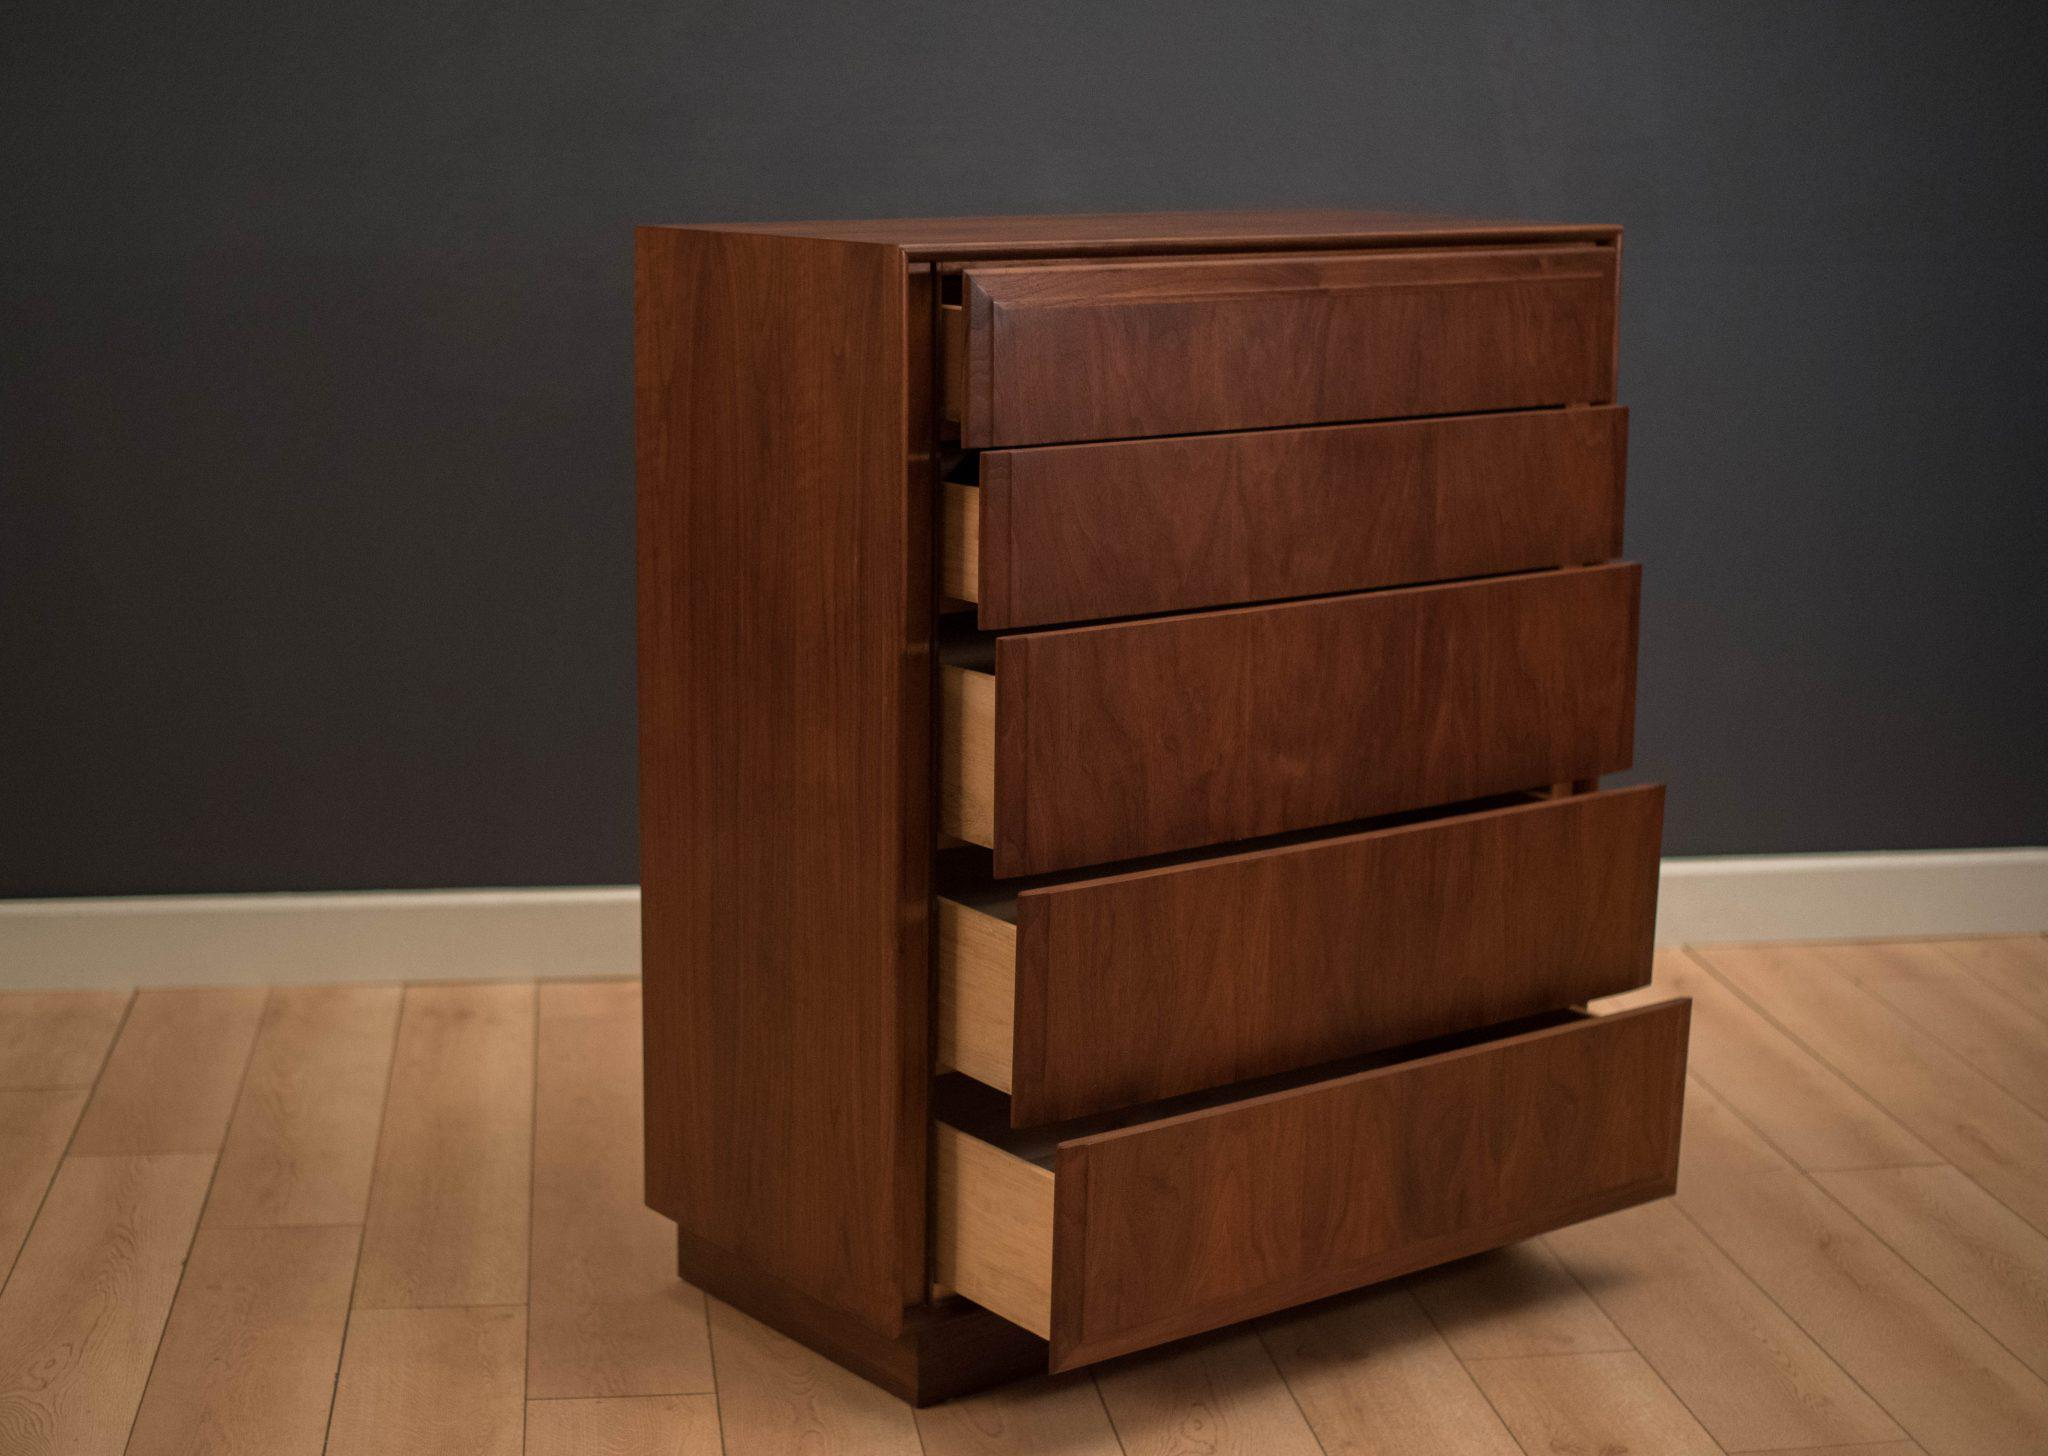 Mid Century Highboy Dresser In Walnut Manufactured By Dillingham Furniture.  This Piece Includes Plenty